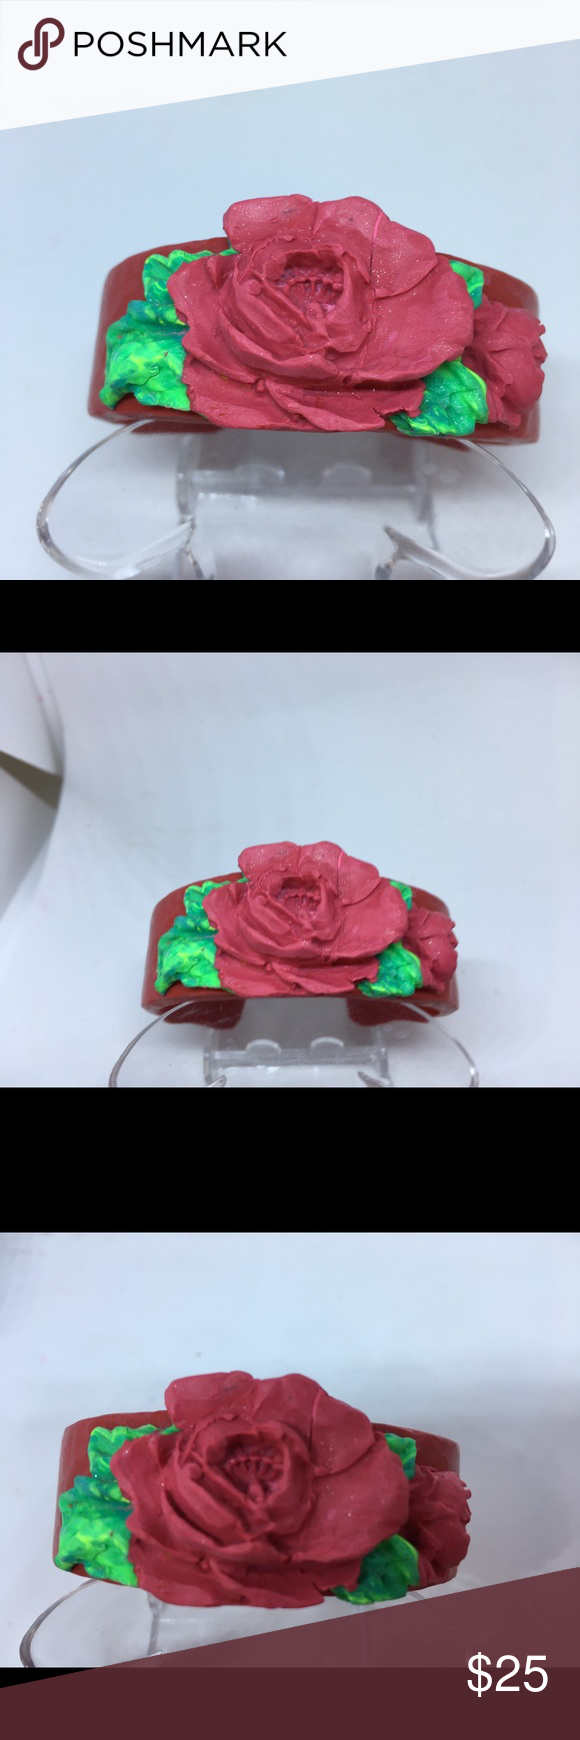 Unique Handmade Polymer Clay Cuff Bangle Bracelet #fabrictape